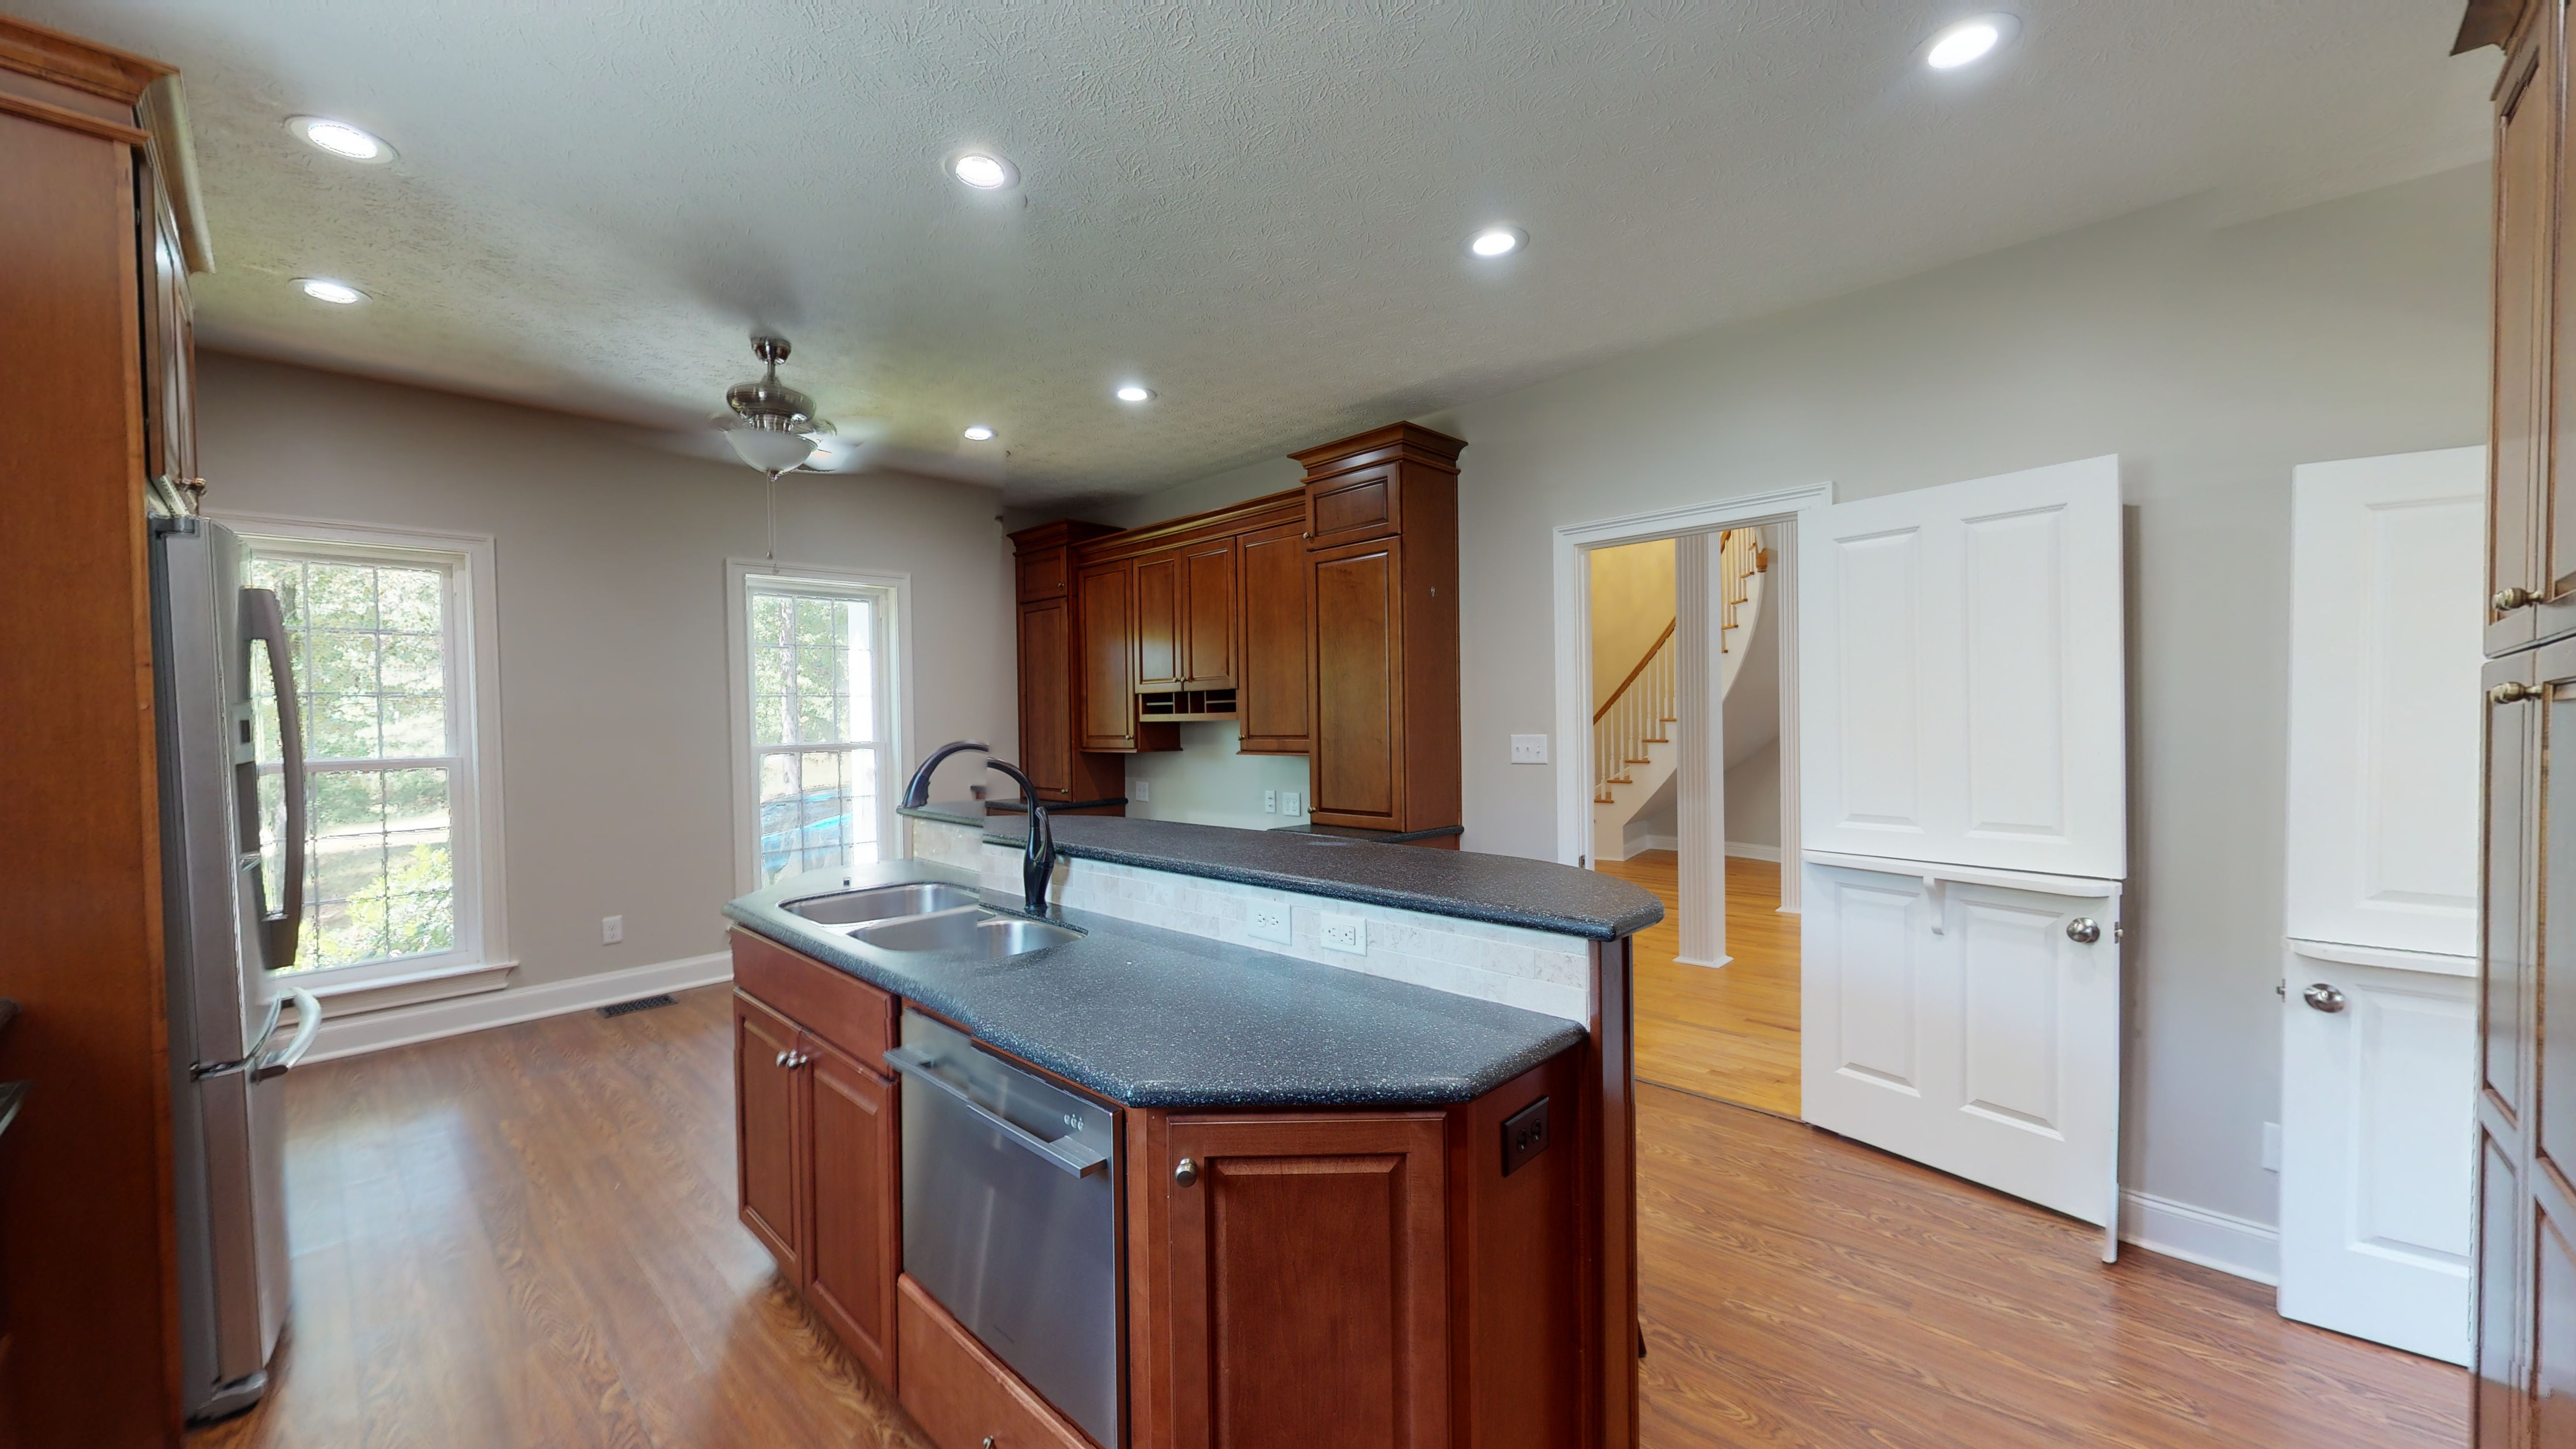 FOR SALE IN PRATTVILLE! 3 BED 3 BATH AT 1050 CHOCTAW RIDGE ROAD